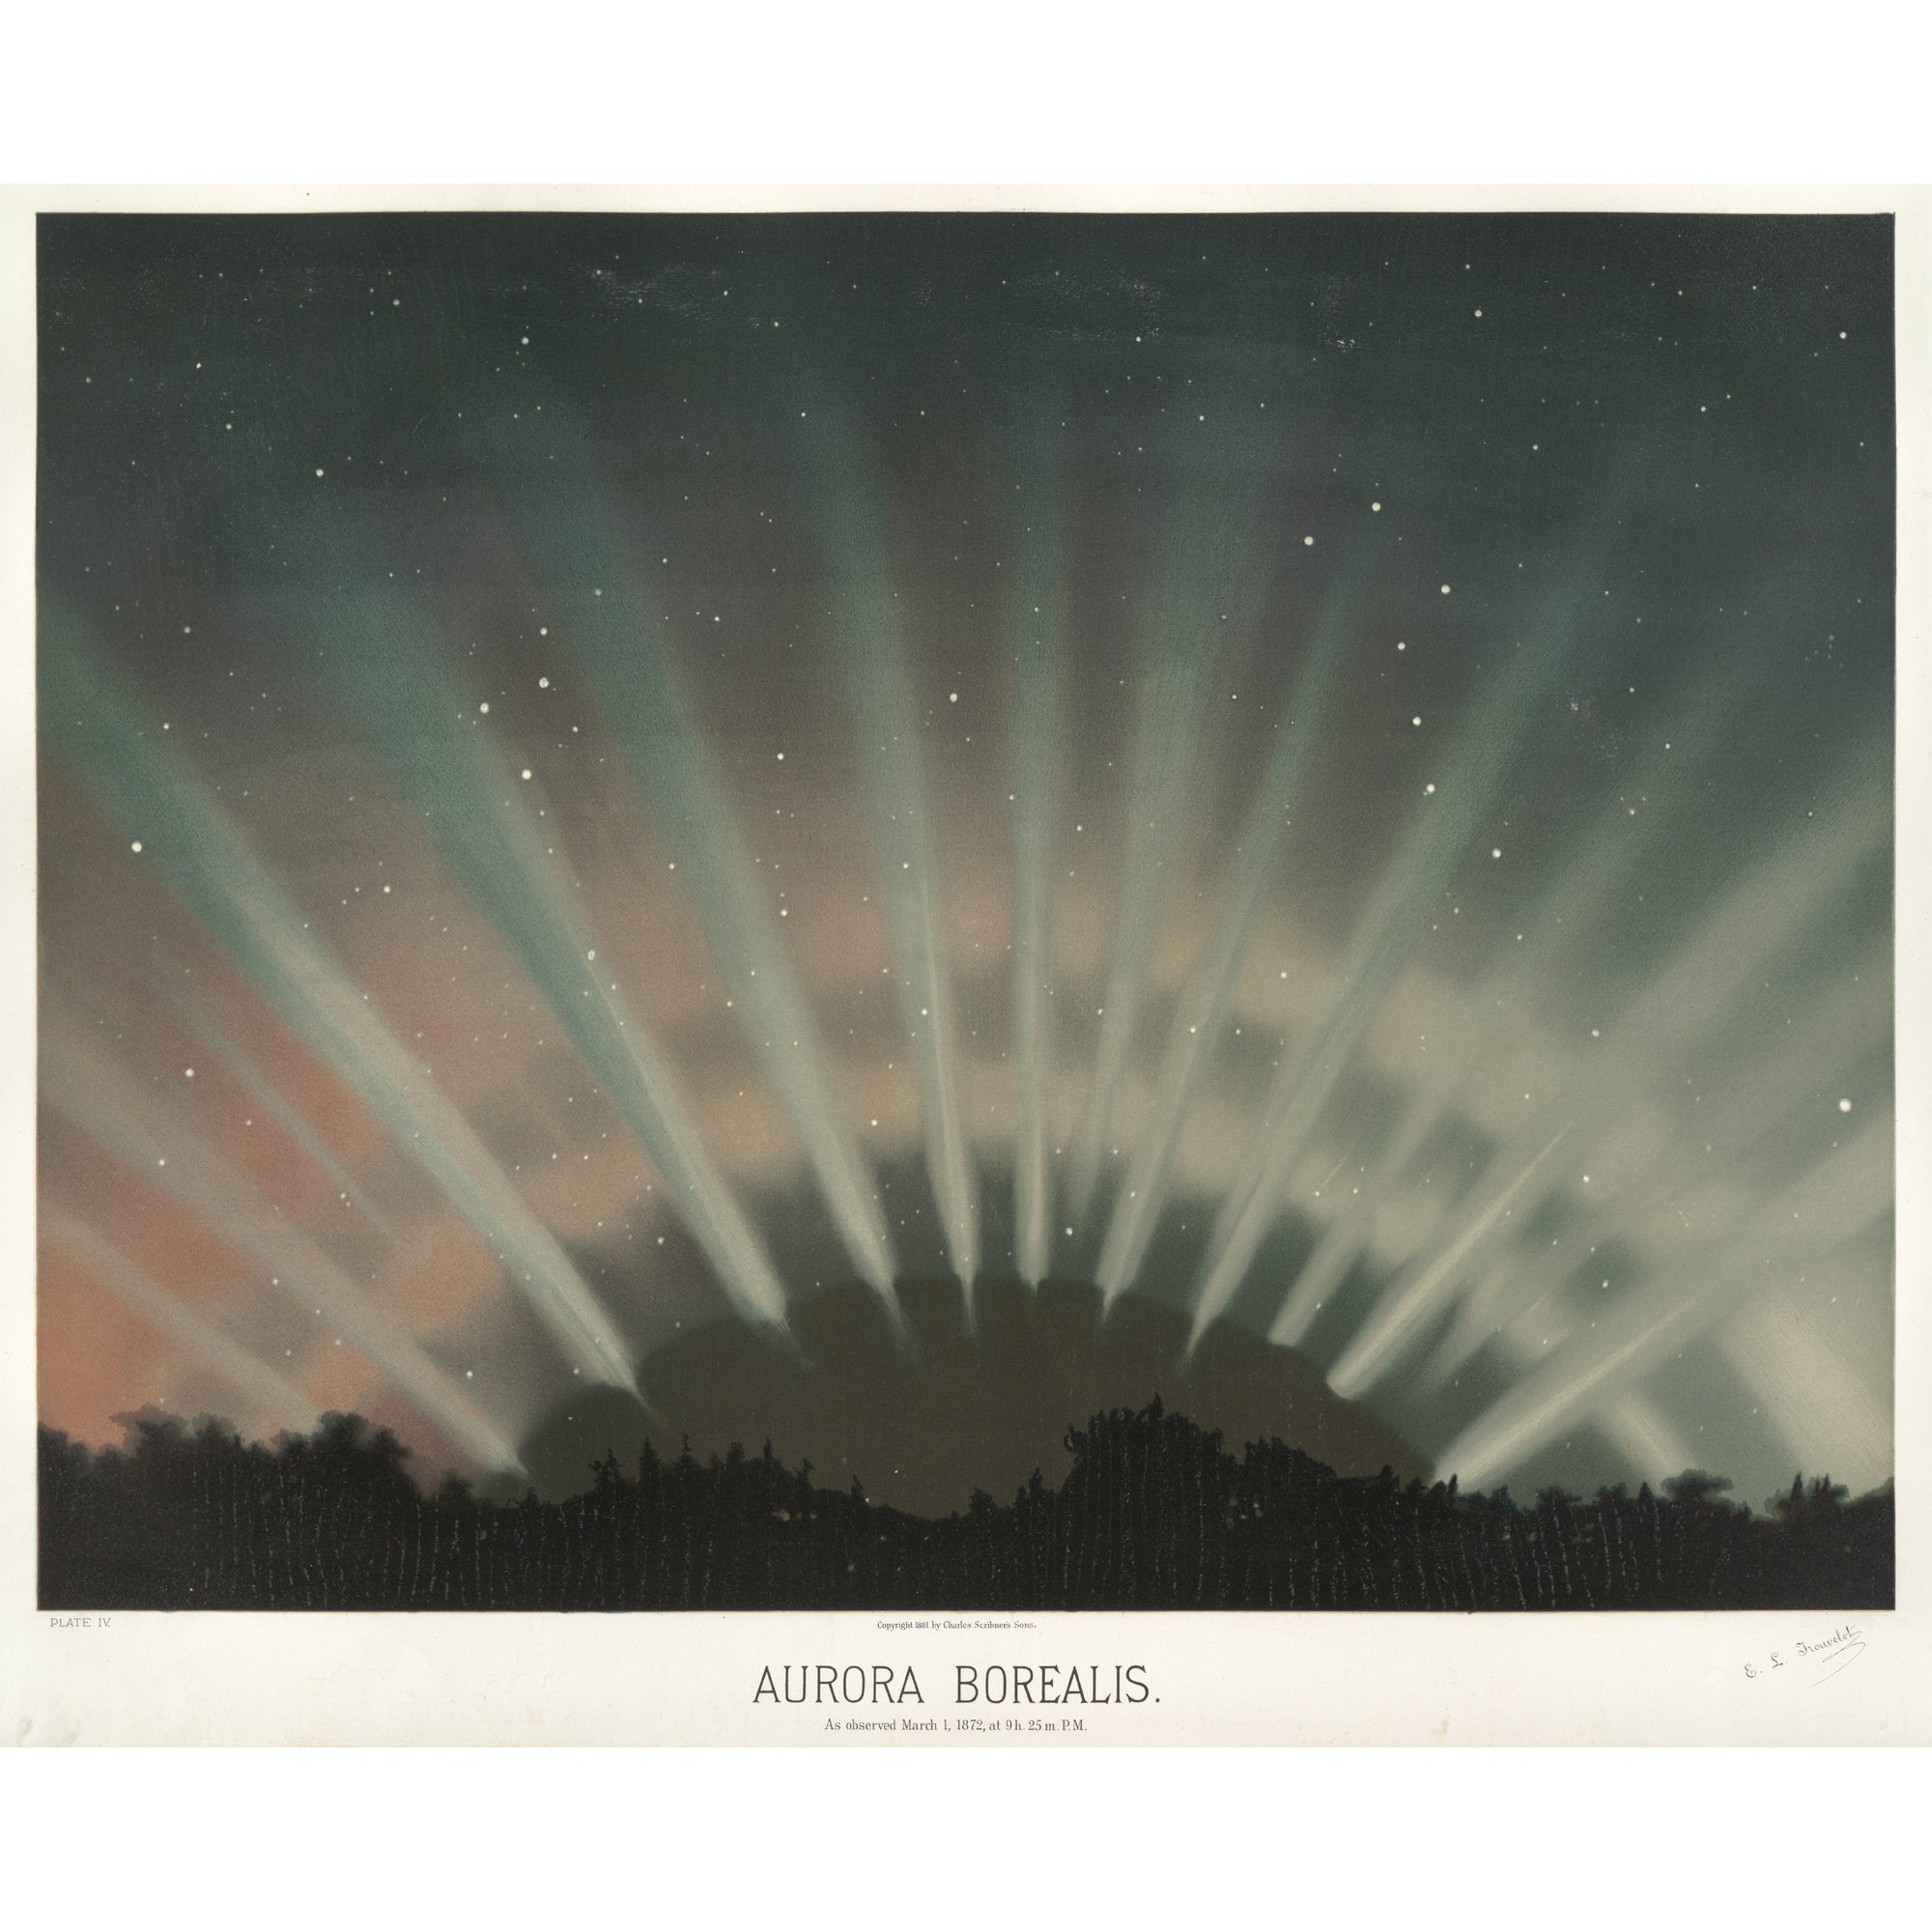 <i>Aurora Borealis</i> by Etienne Leopold Trouvelot